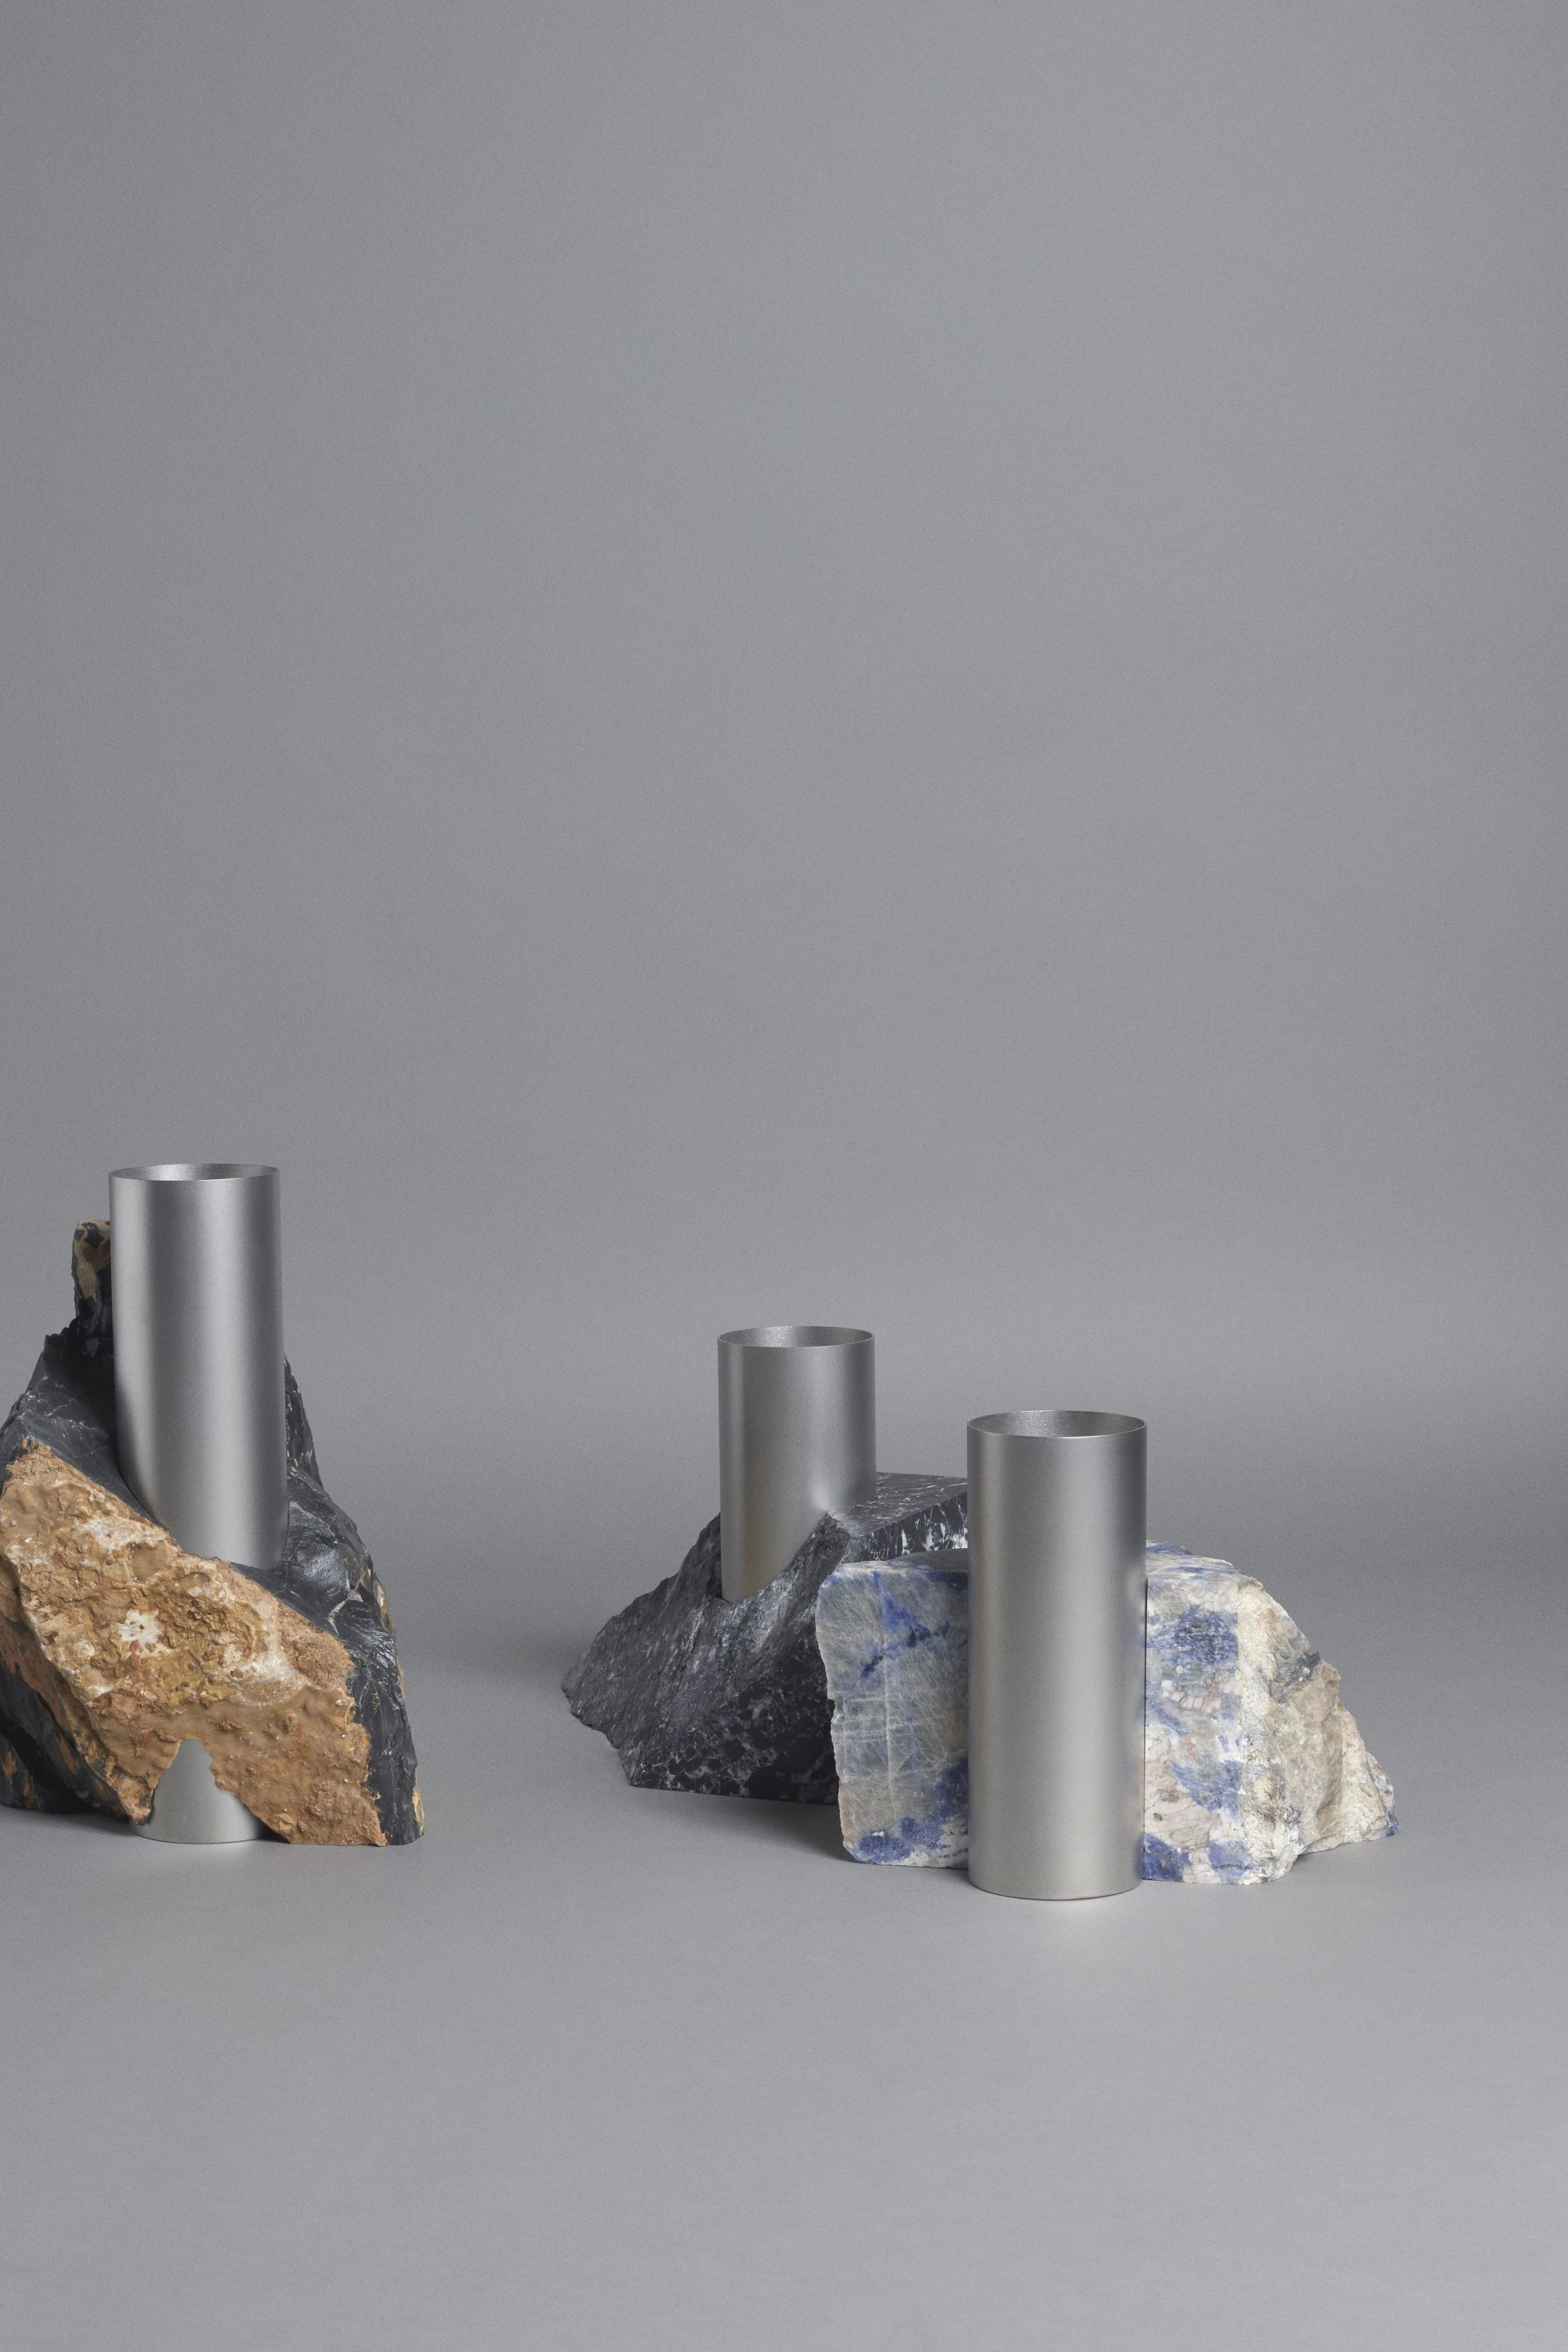 Bloc Studios x Tableau, Minimal marble and metal vase series